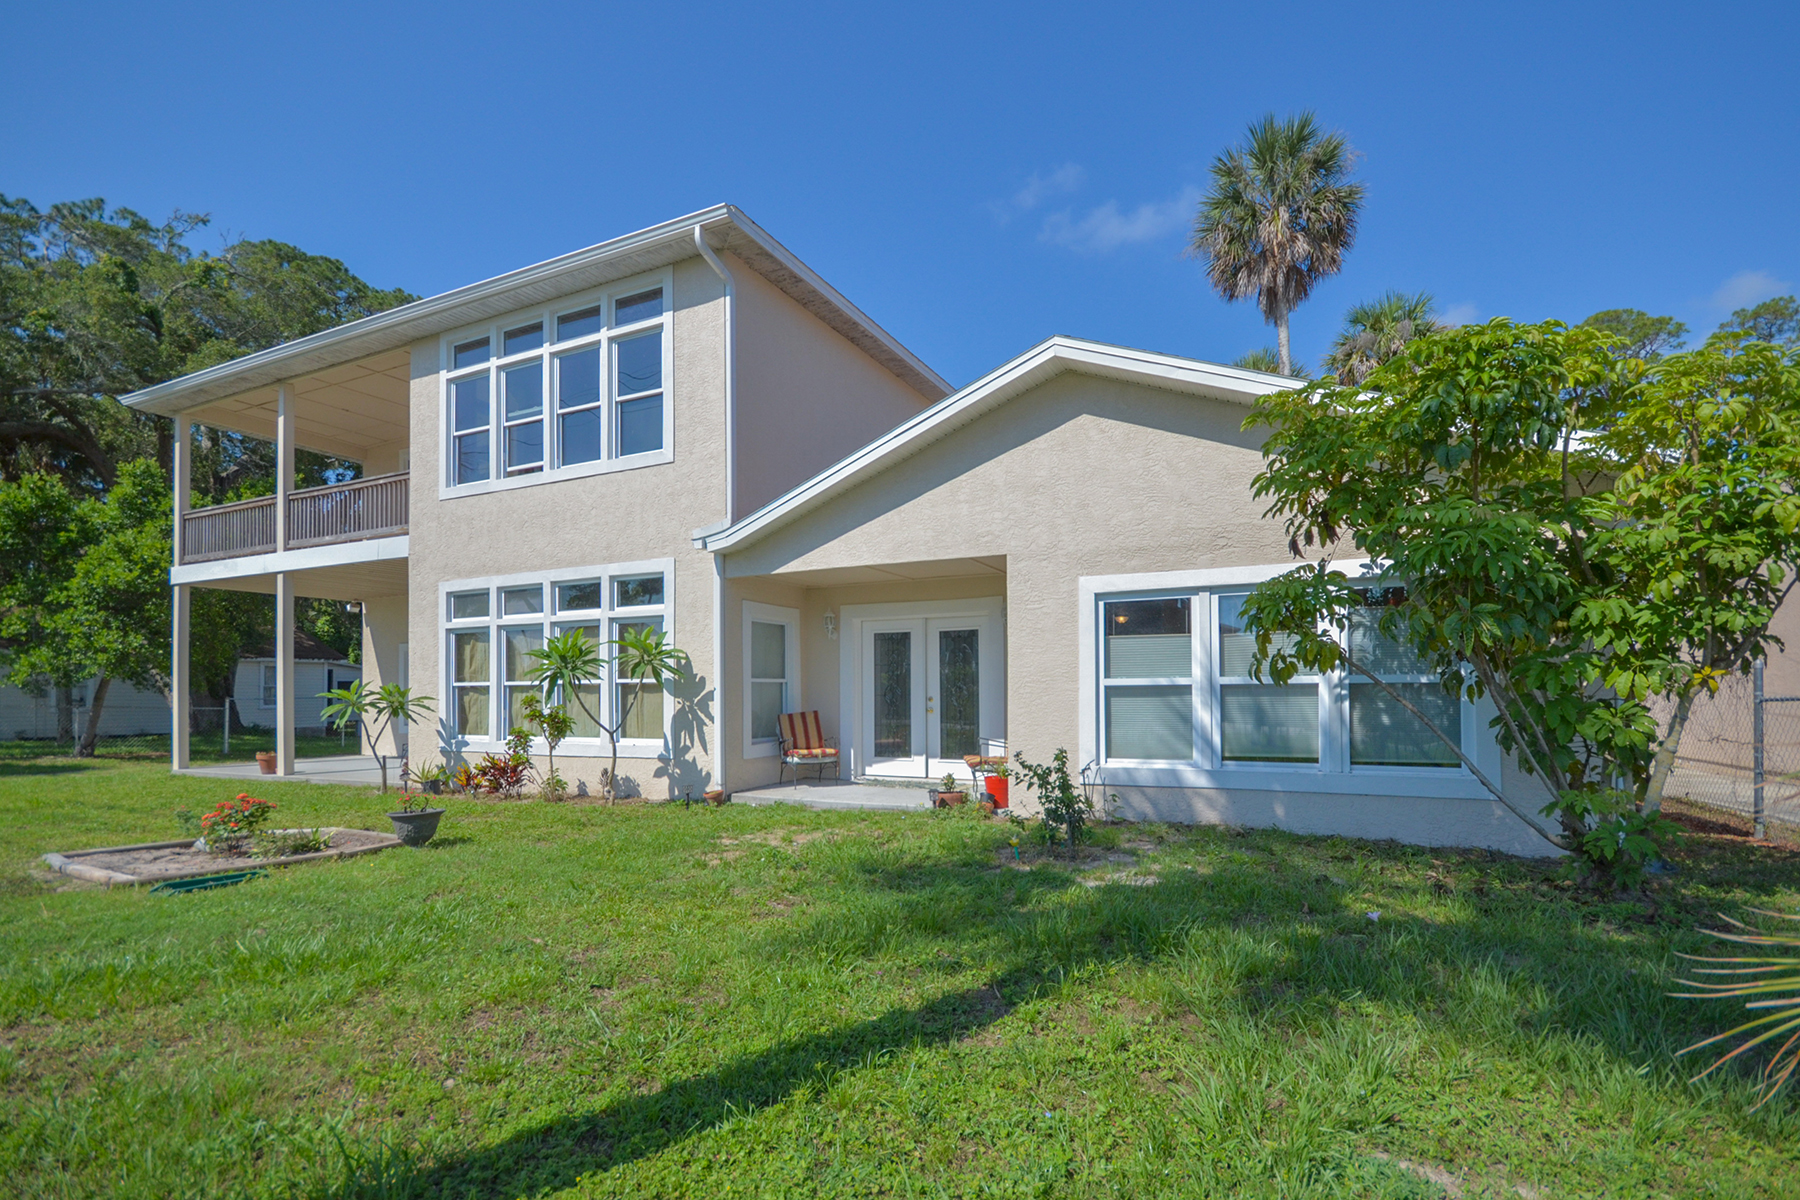 Single Family Home for Sale at DAYTONA BEACH - HOLLY HILL 1618 Riverside Dr Holly Hill, Florida, 32117 United States